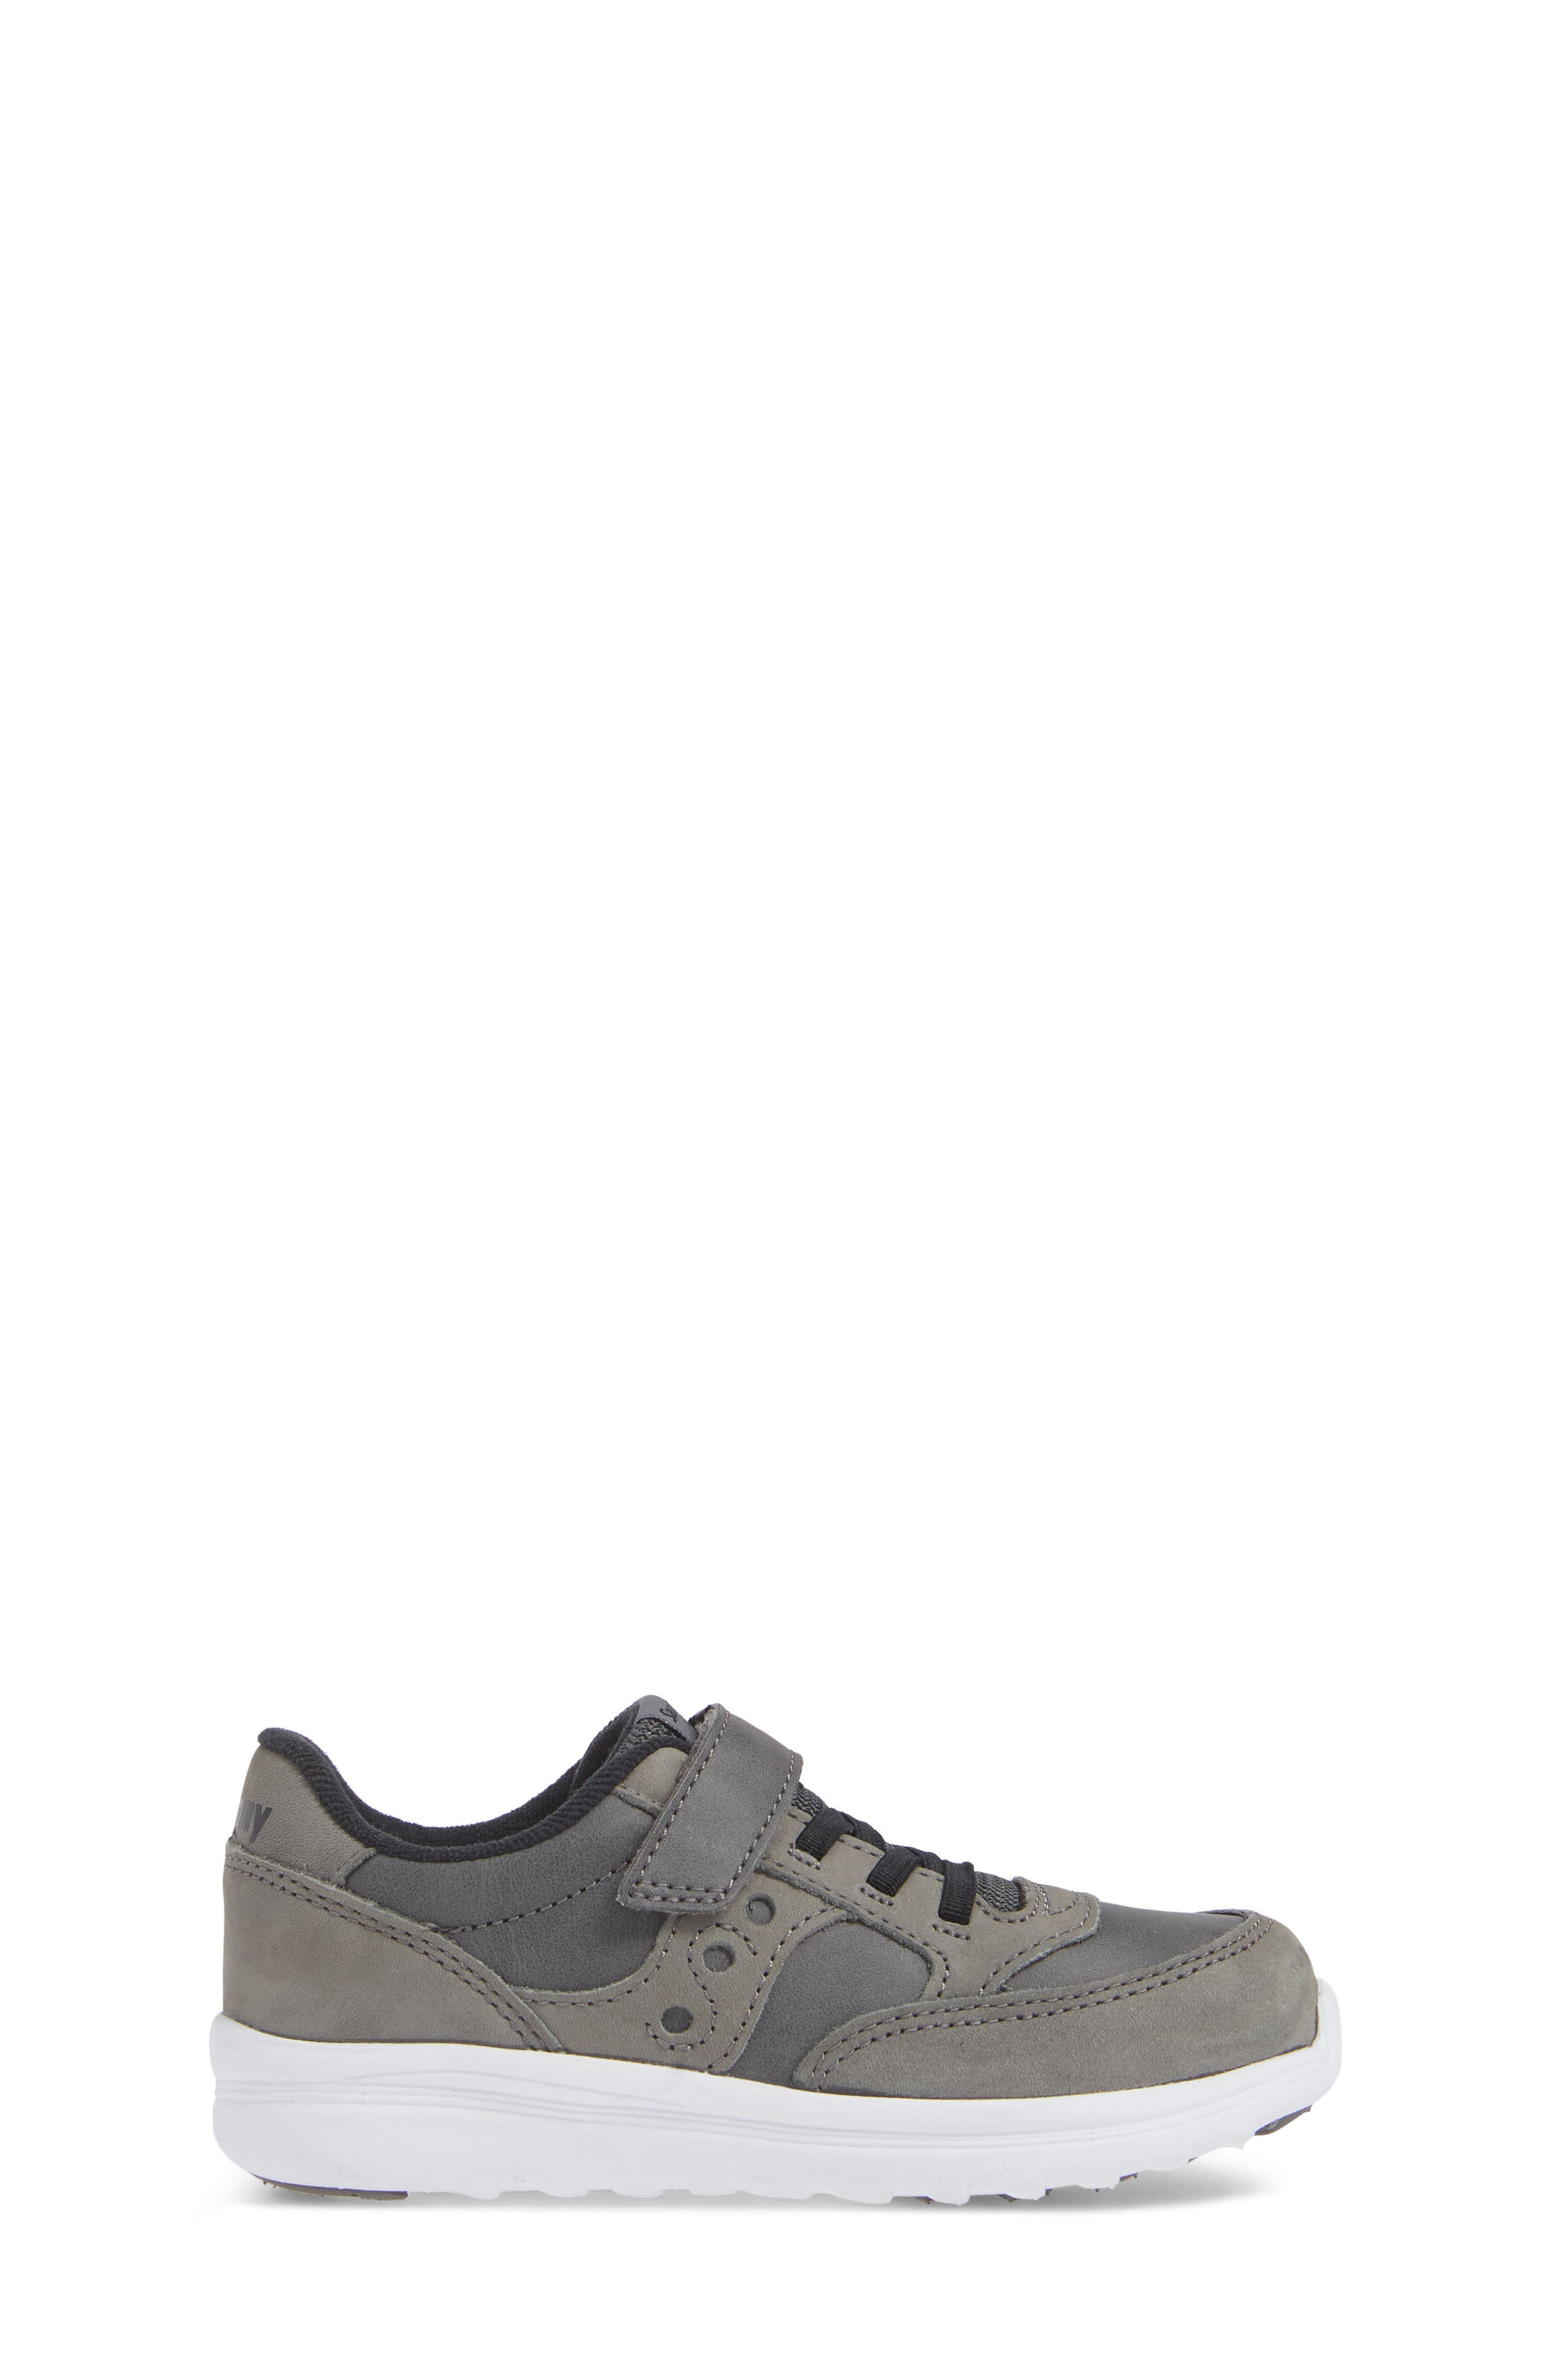 'Baby Jazz - Lite' Sneaker,                             Alternate thumbnail 3, color,                             GREY LEATHER